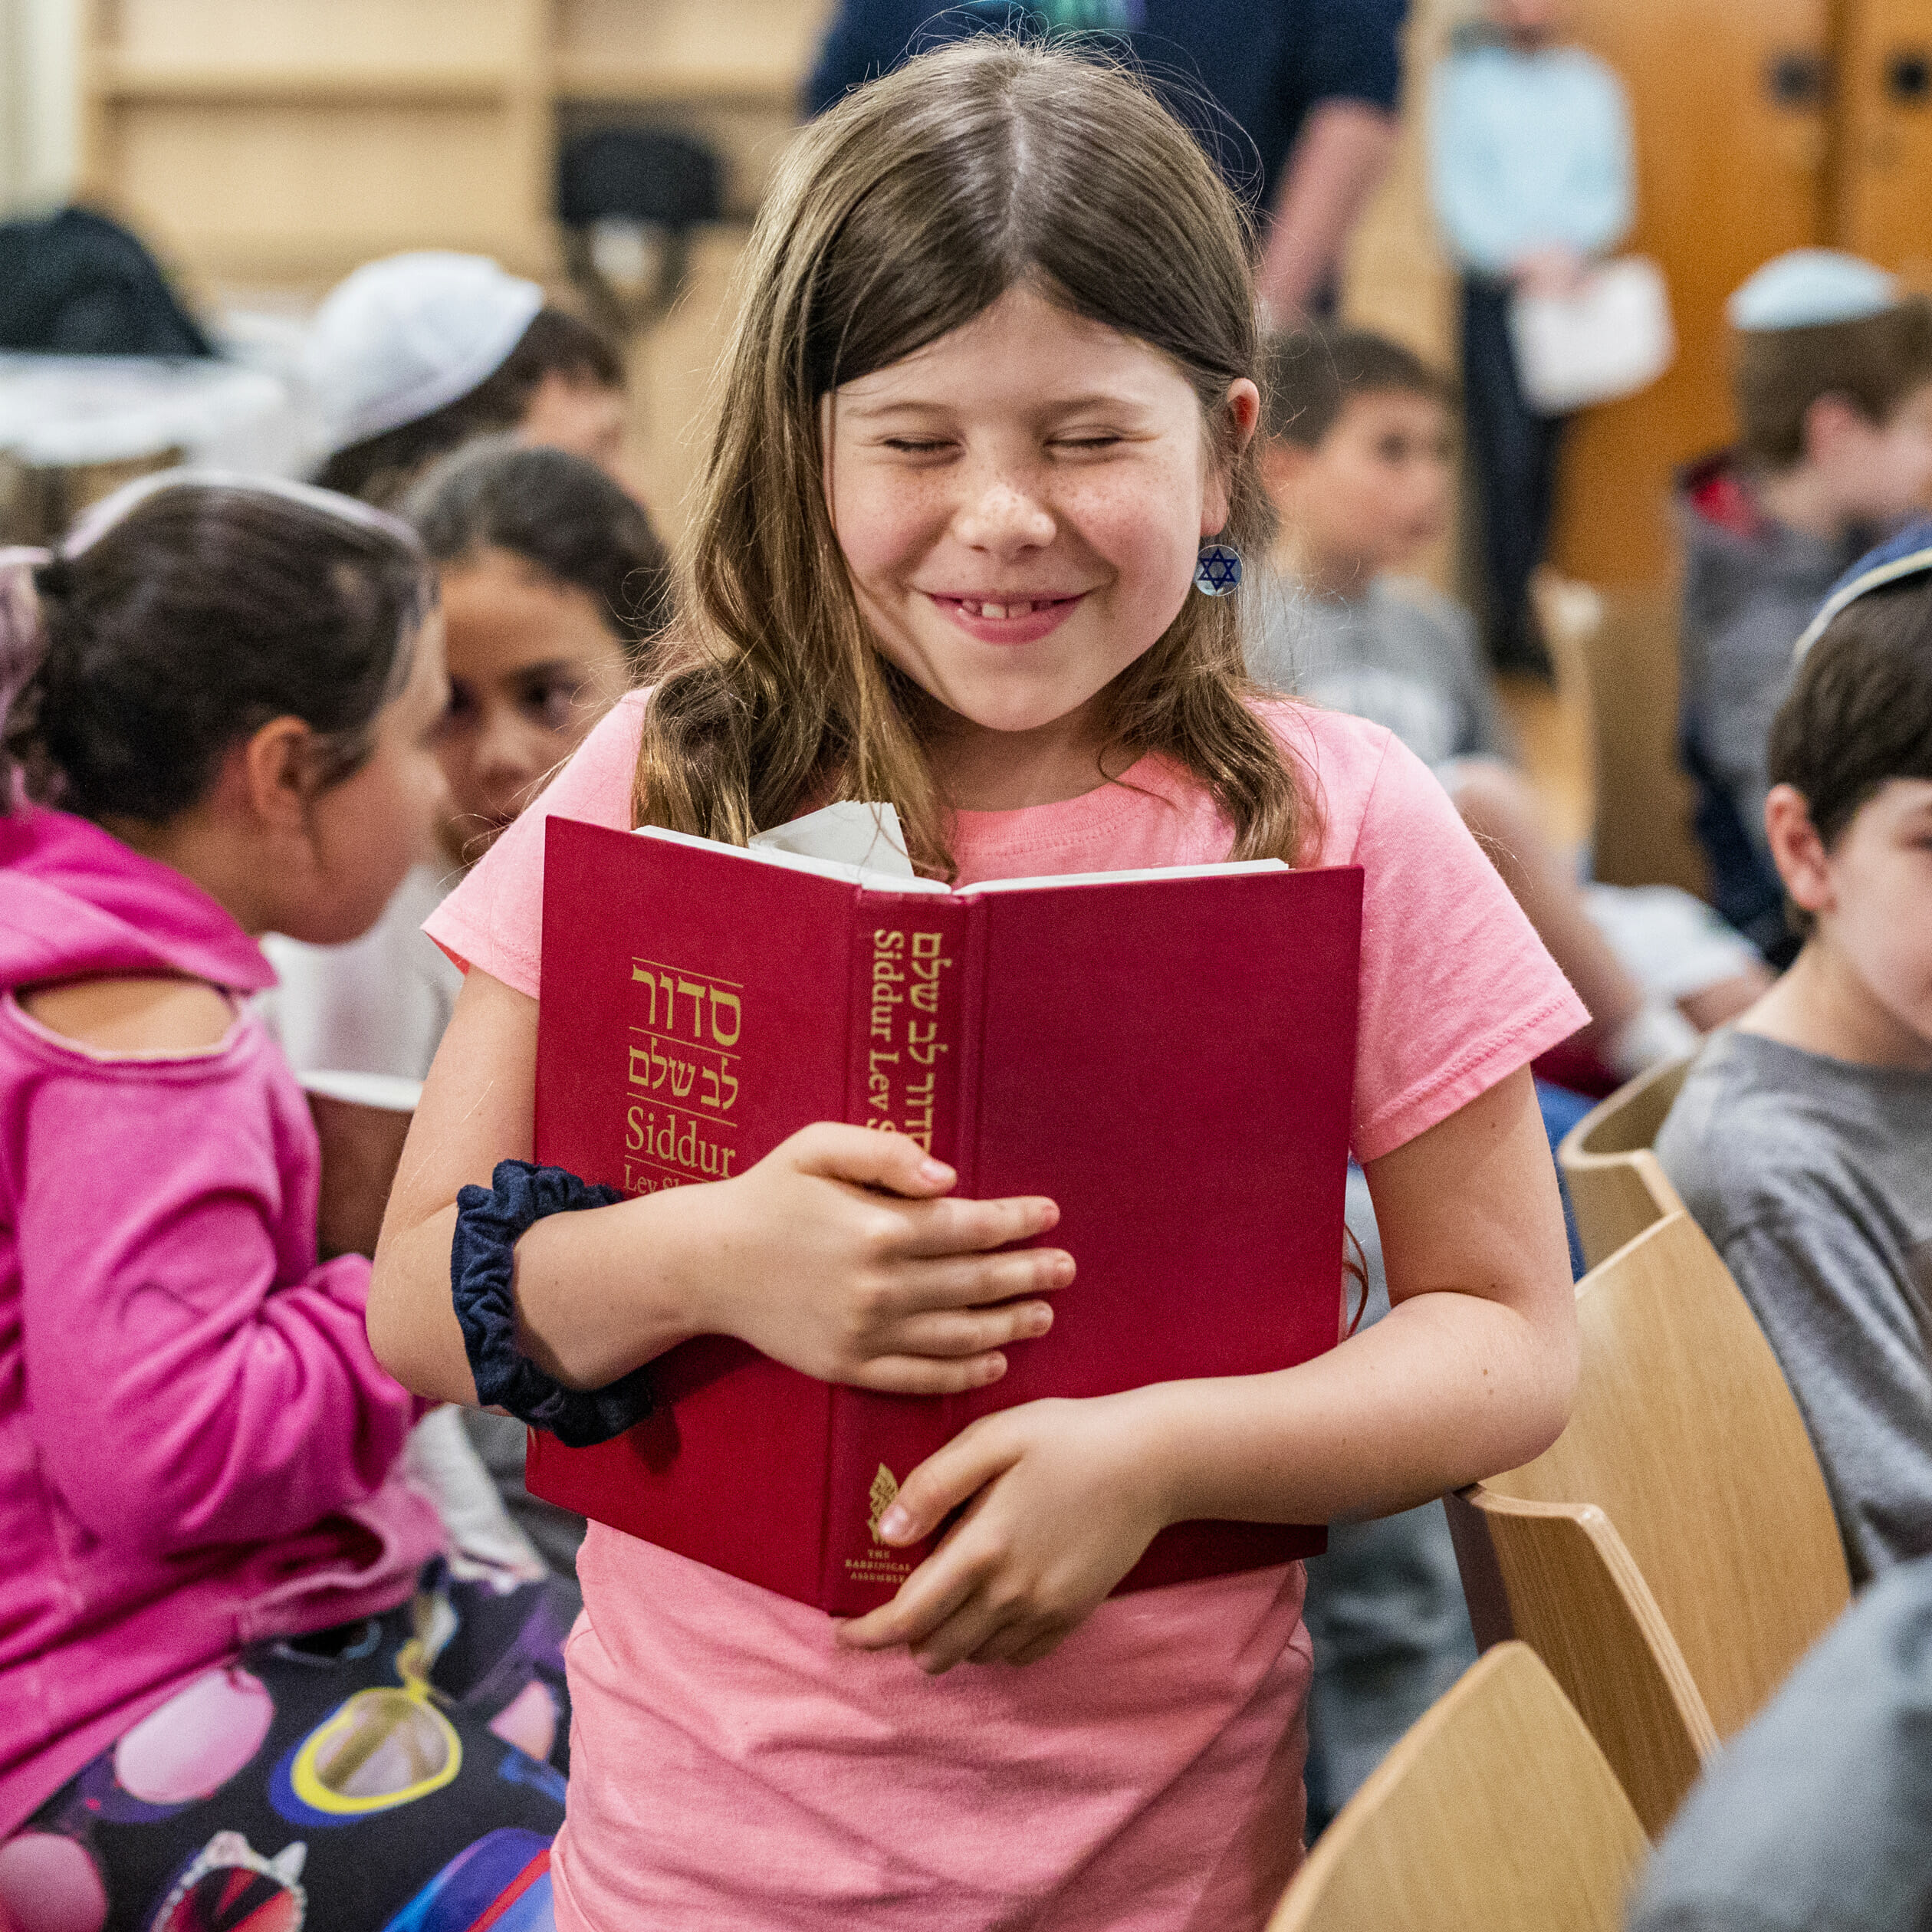 girl closely holding siddur book and smiling